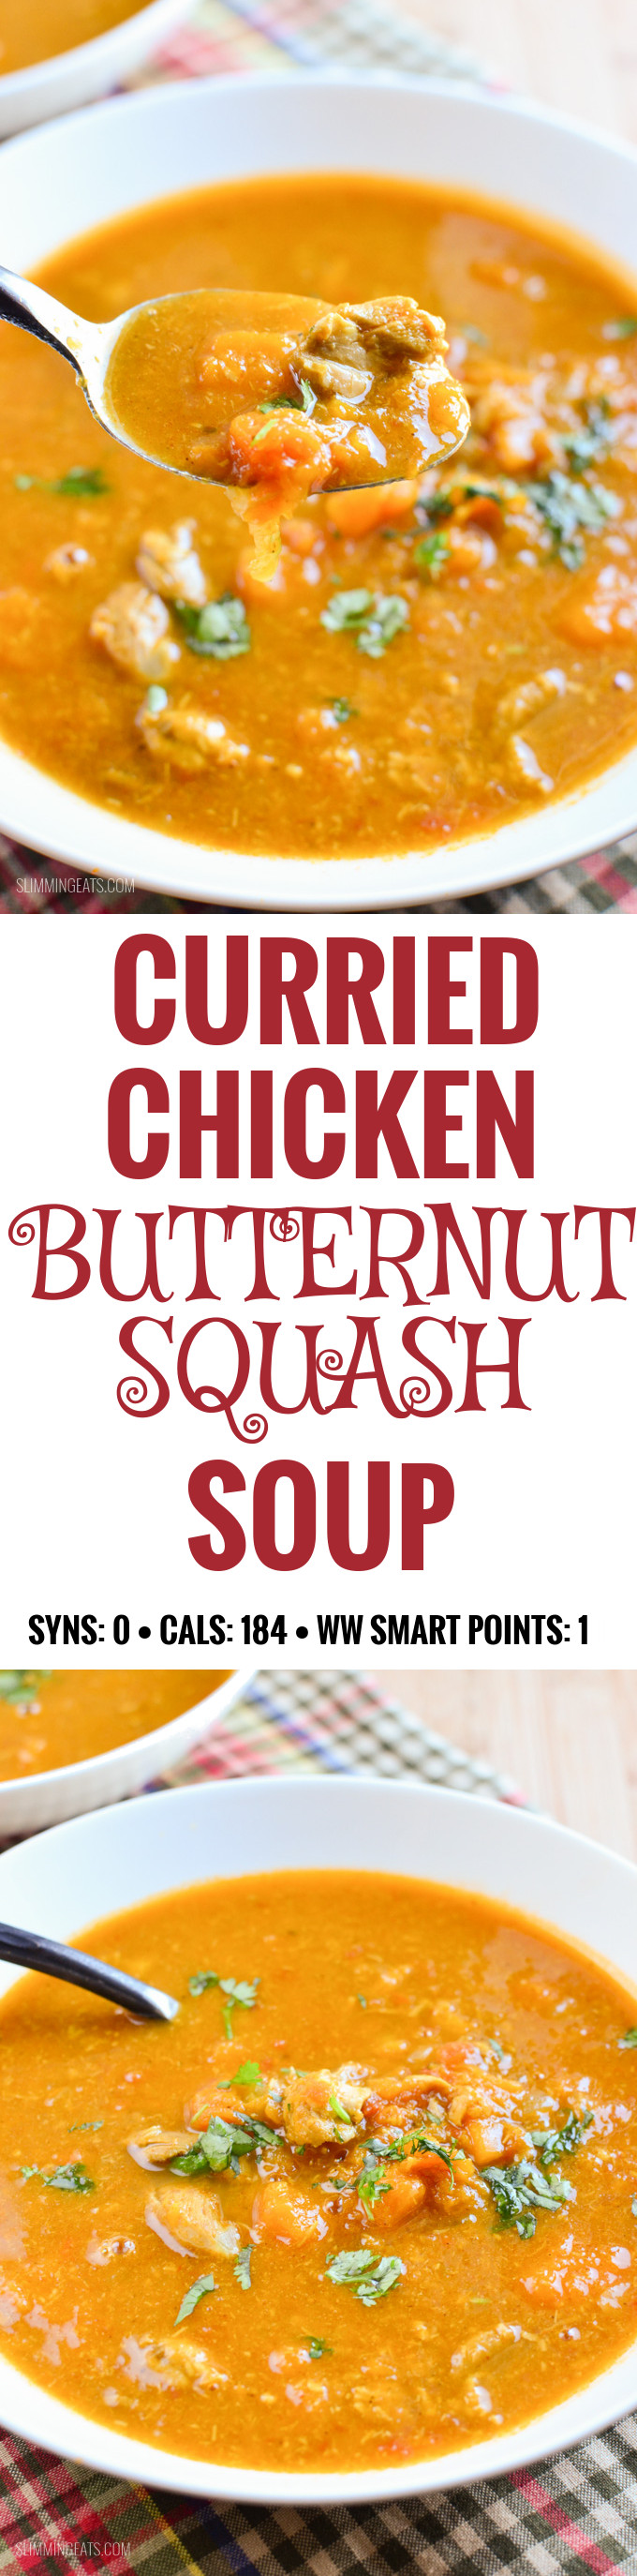 Curried Chicken and Butternut Squash Soup - Slimming Eats